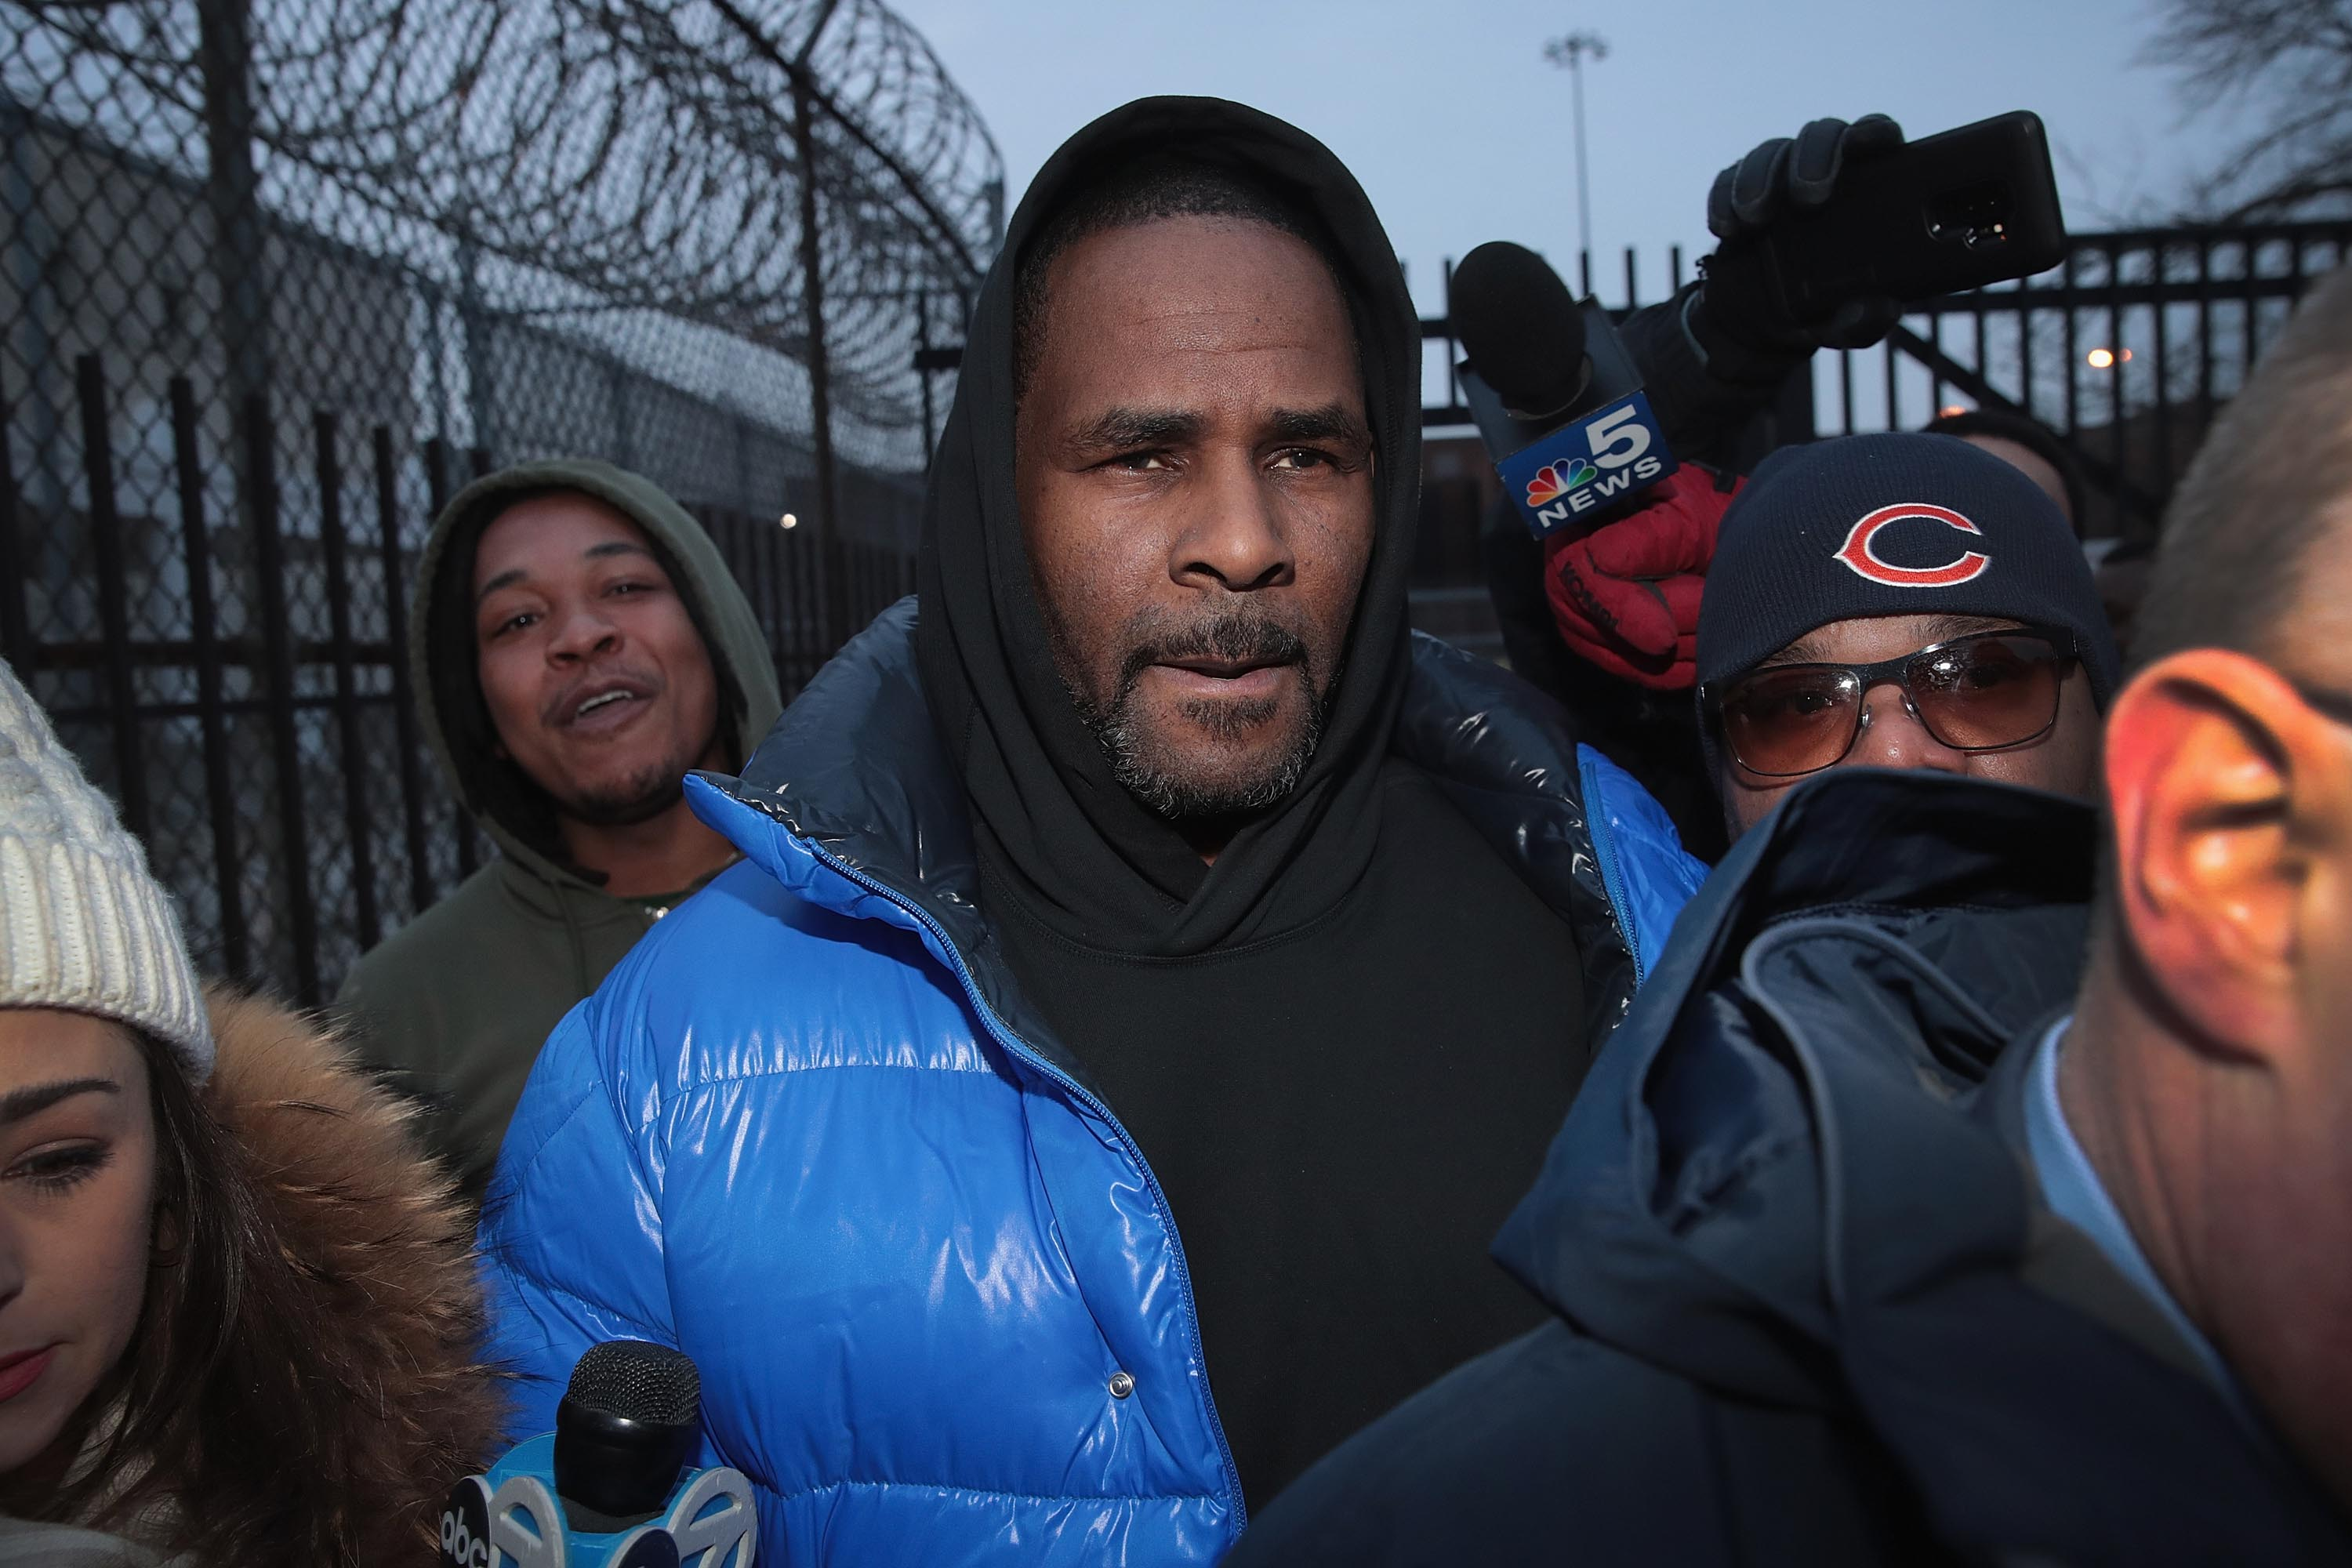 R. Kelly leaves the Cook County jail after posting $100 thousand bond on February 25, 2019 in Chicago, Illinois. | Photo: GettyImages